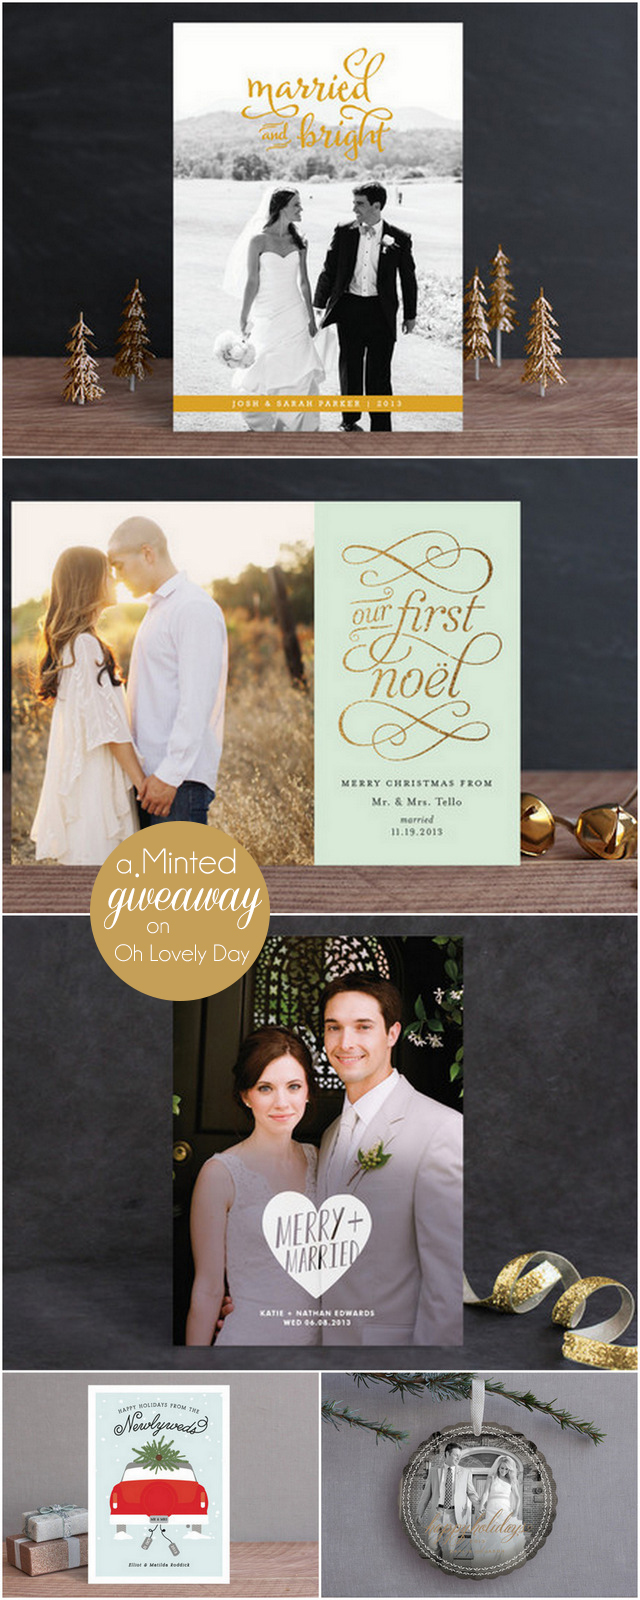 Holiday Cards and A Minted Giveaway on Oh Lovely Day